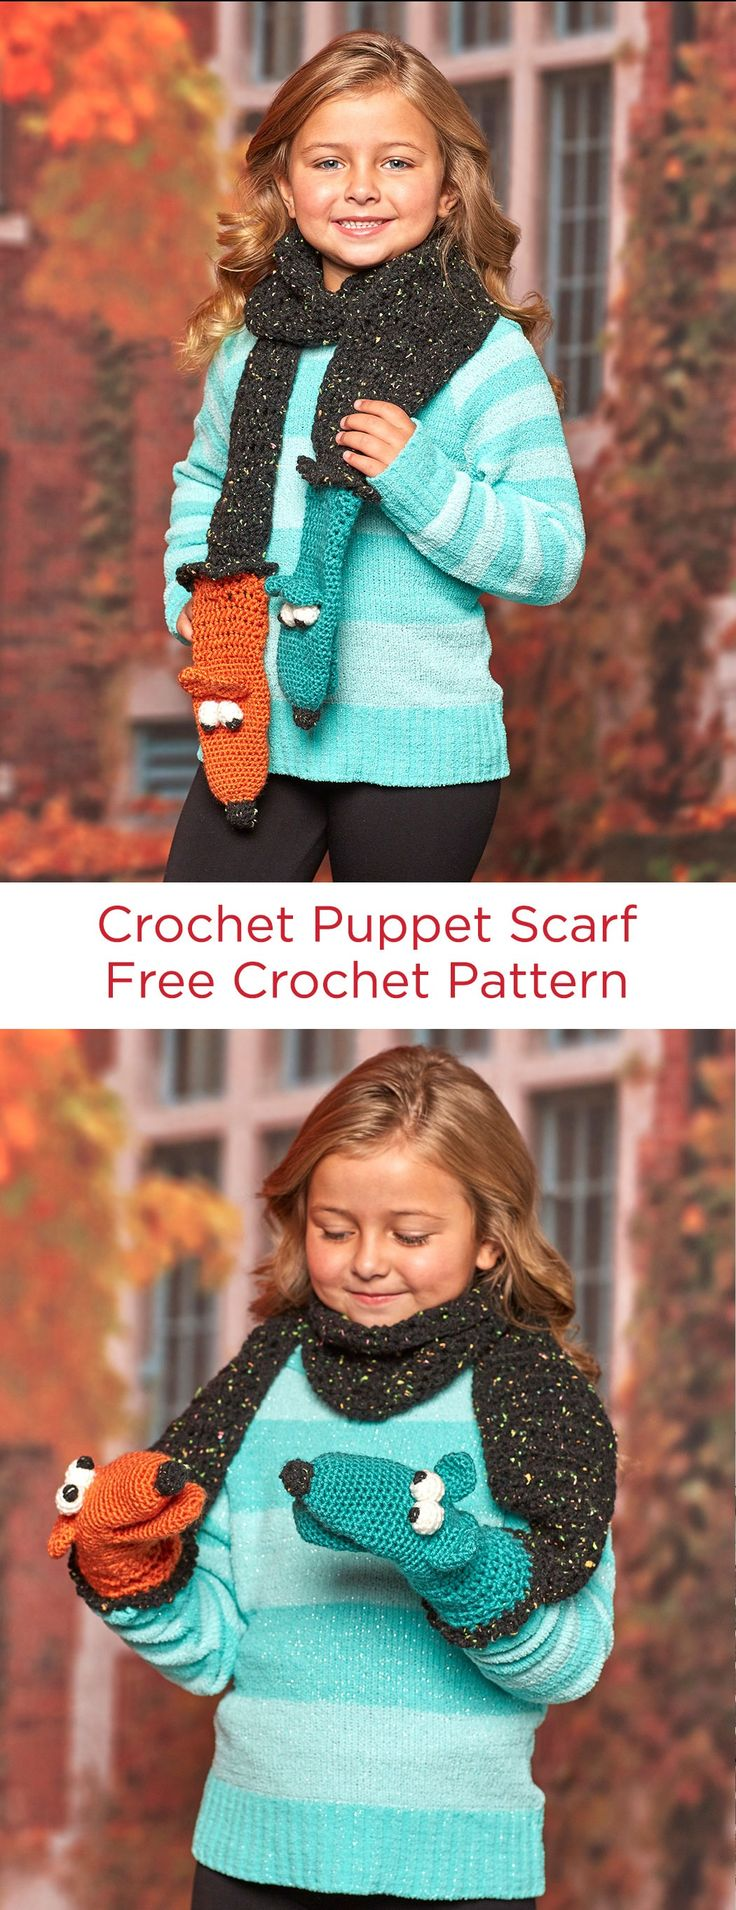 Crochet Puppet Scarf Free Crochet Pattern in Red Heart Yarns -- This fun crochet accessory will keep 'em warm and offer an opportunity for creative play. Puppets at the two ends of the scarf keep their hands warm as they play with the puppets!